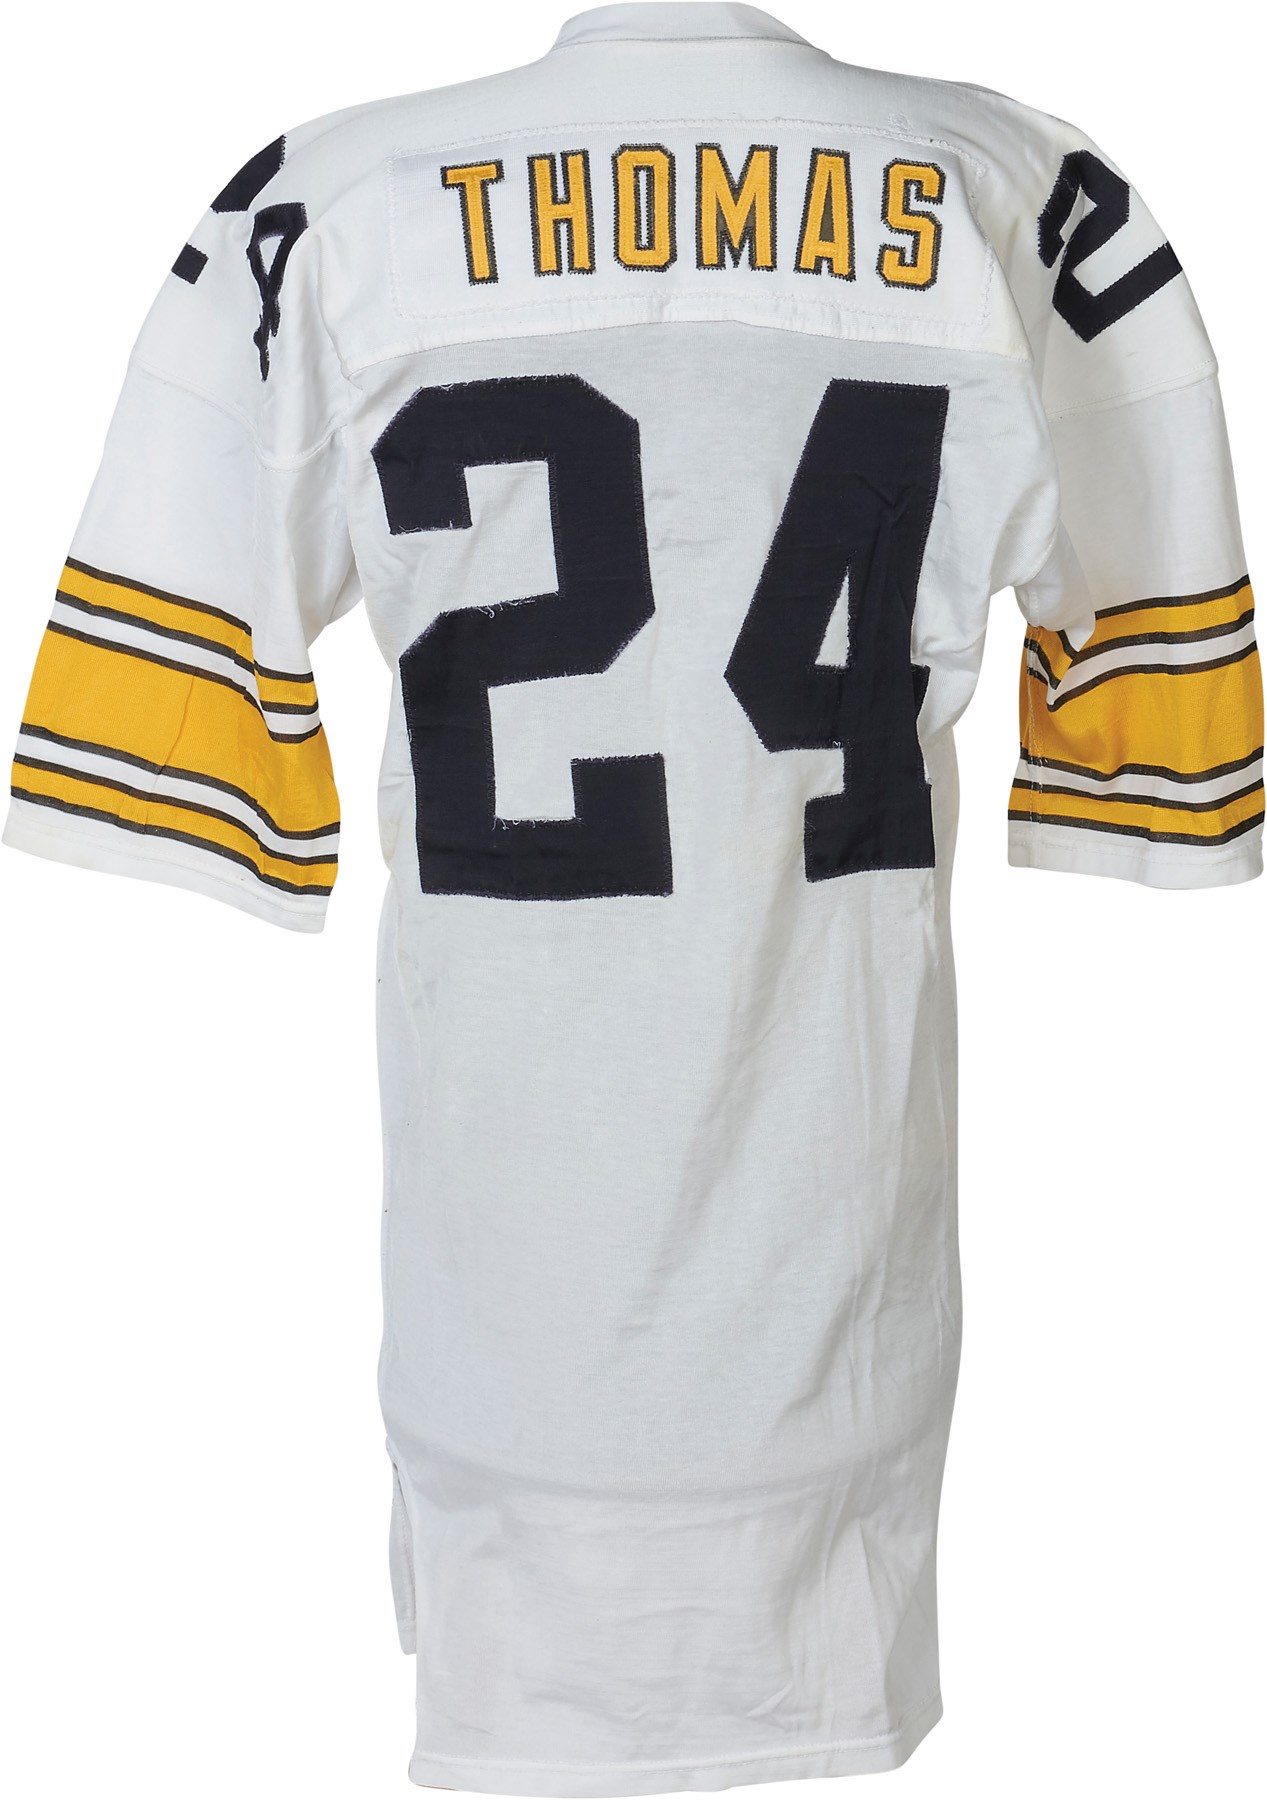 34923837d54 1976 J.T. Thomas Pittsburgh Steelers Game Worn Jersey